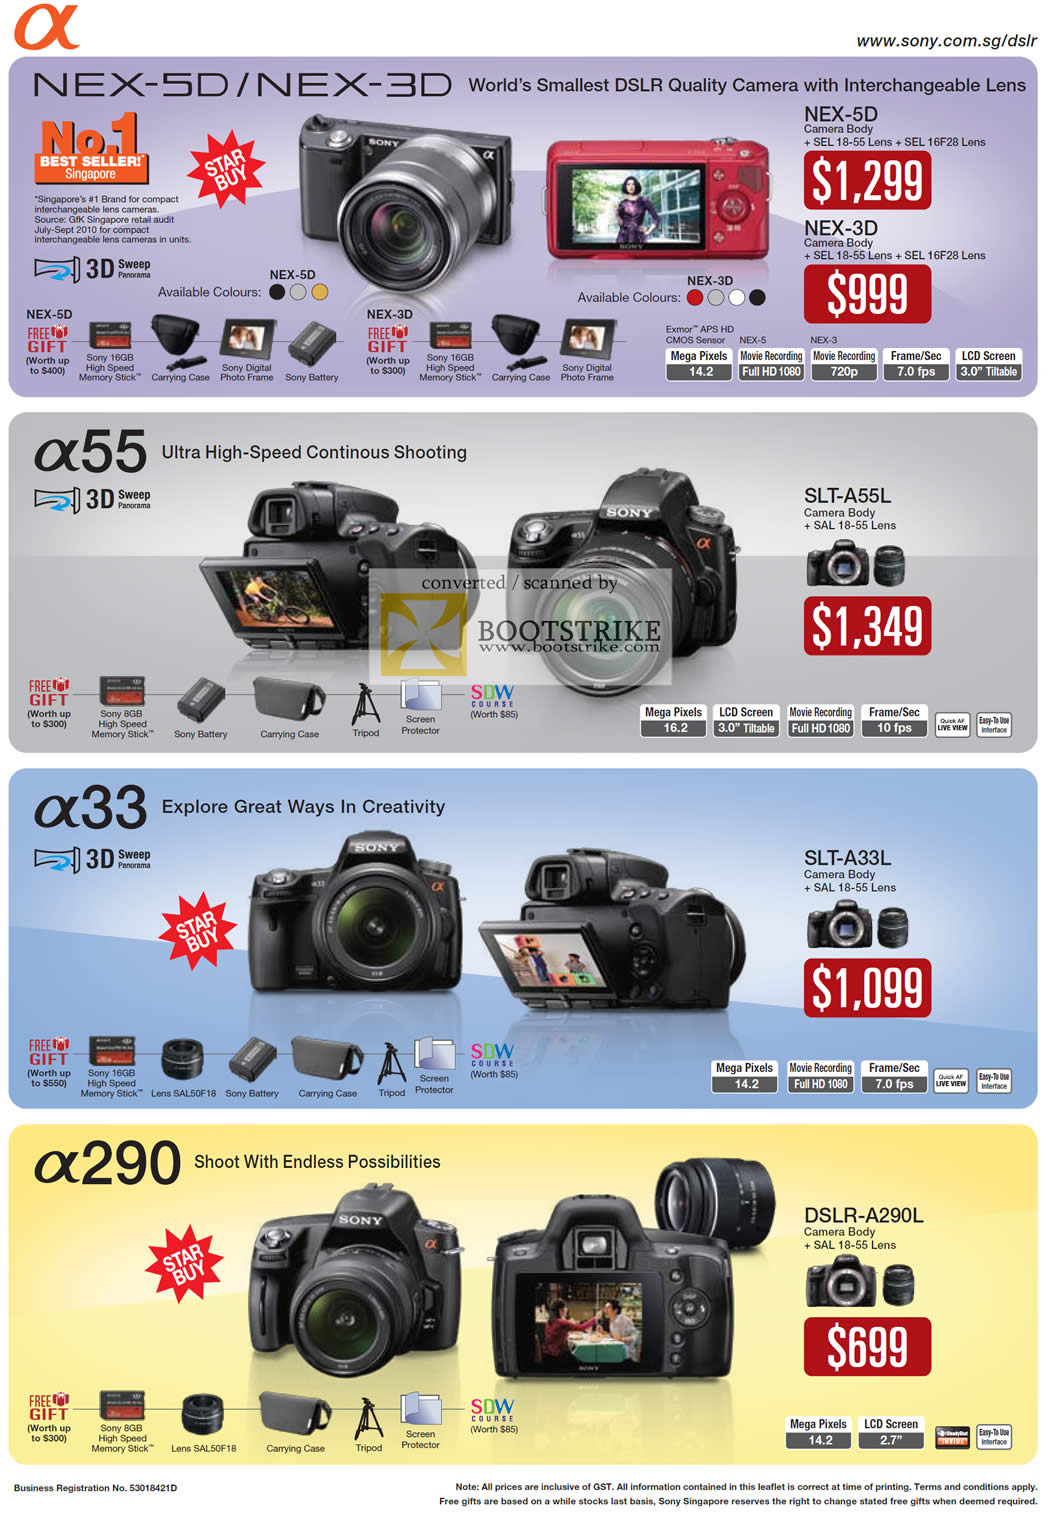 Camera Sony Dslr Camera Price List sony alpha digital cameras dslr nex 5d 3d a55 a33 a290 it show 2011 price list image brochure of 5d